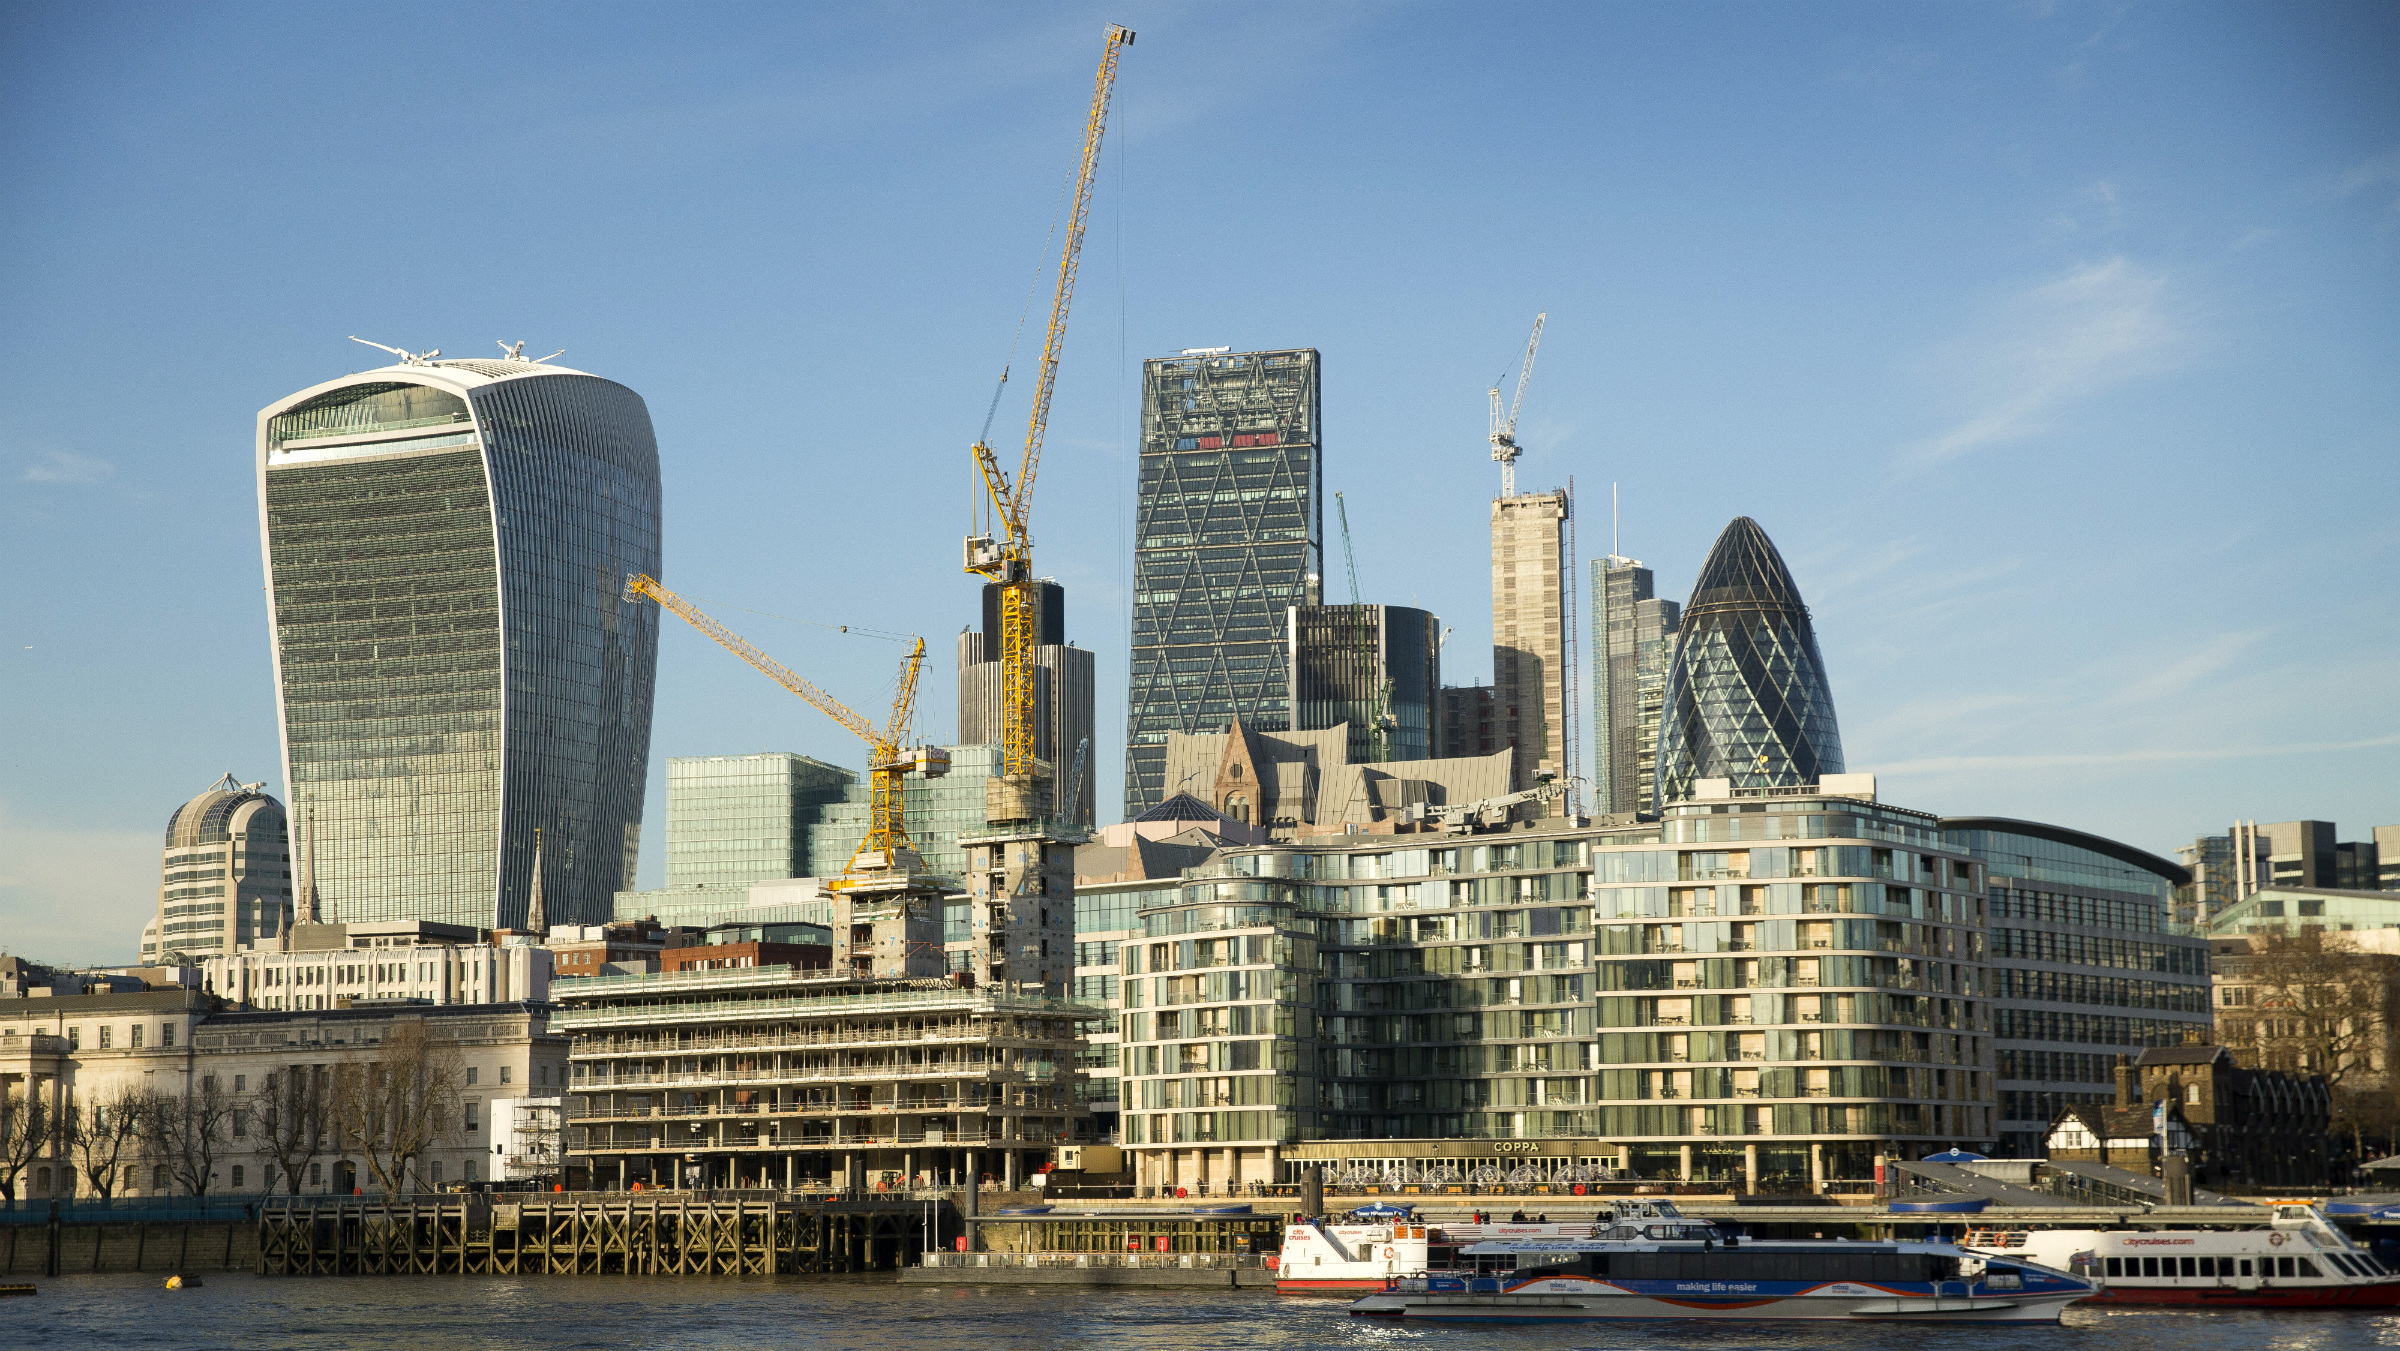 A general view of cranes on the London skyline alongside 20 Fenchurch, left, known locally as the Walkie-Talkie and the fifth tallest completed building in the City of London, as seen from the river Thames, Thursday, Jan. 19, 2017.